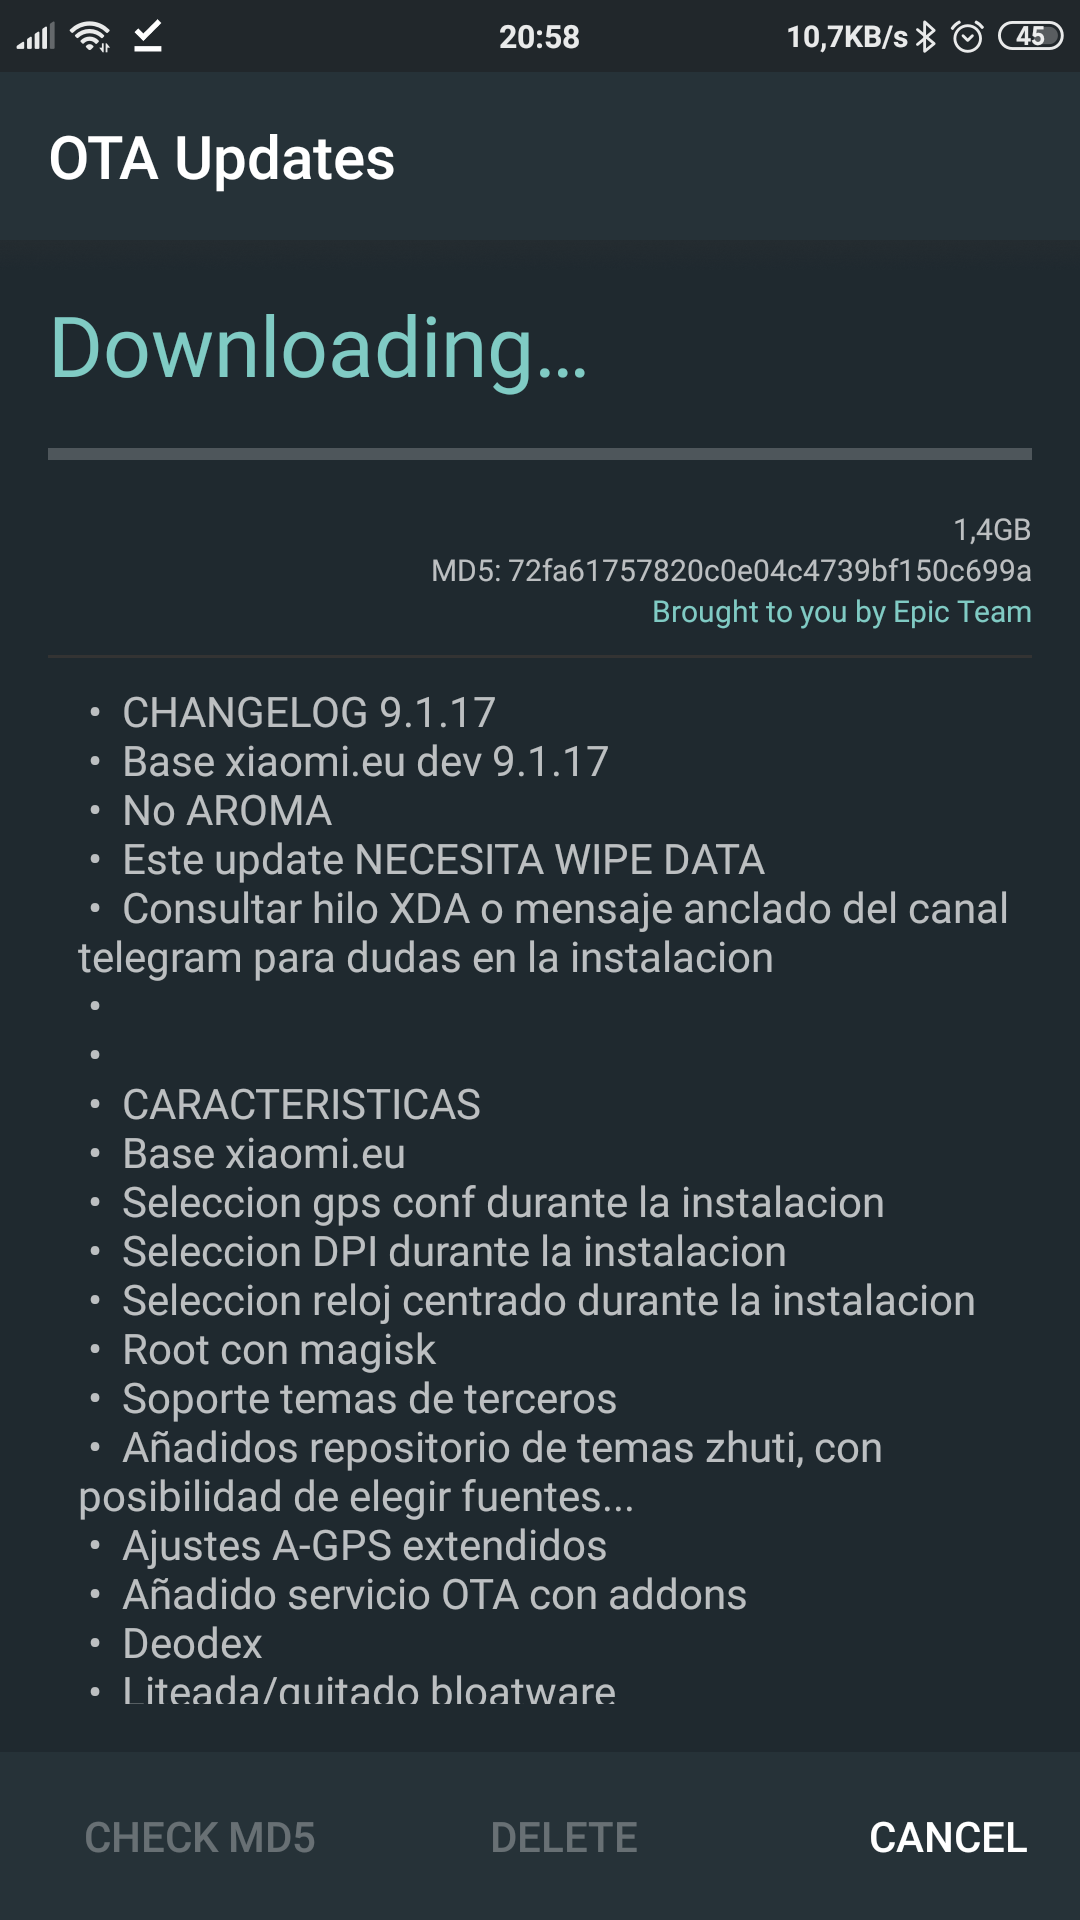 Screenshot_2019-02-24-20-58-57-103_com.ota.updates.png